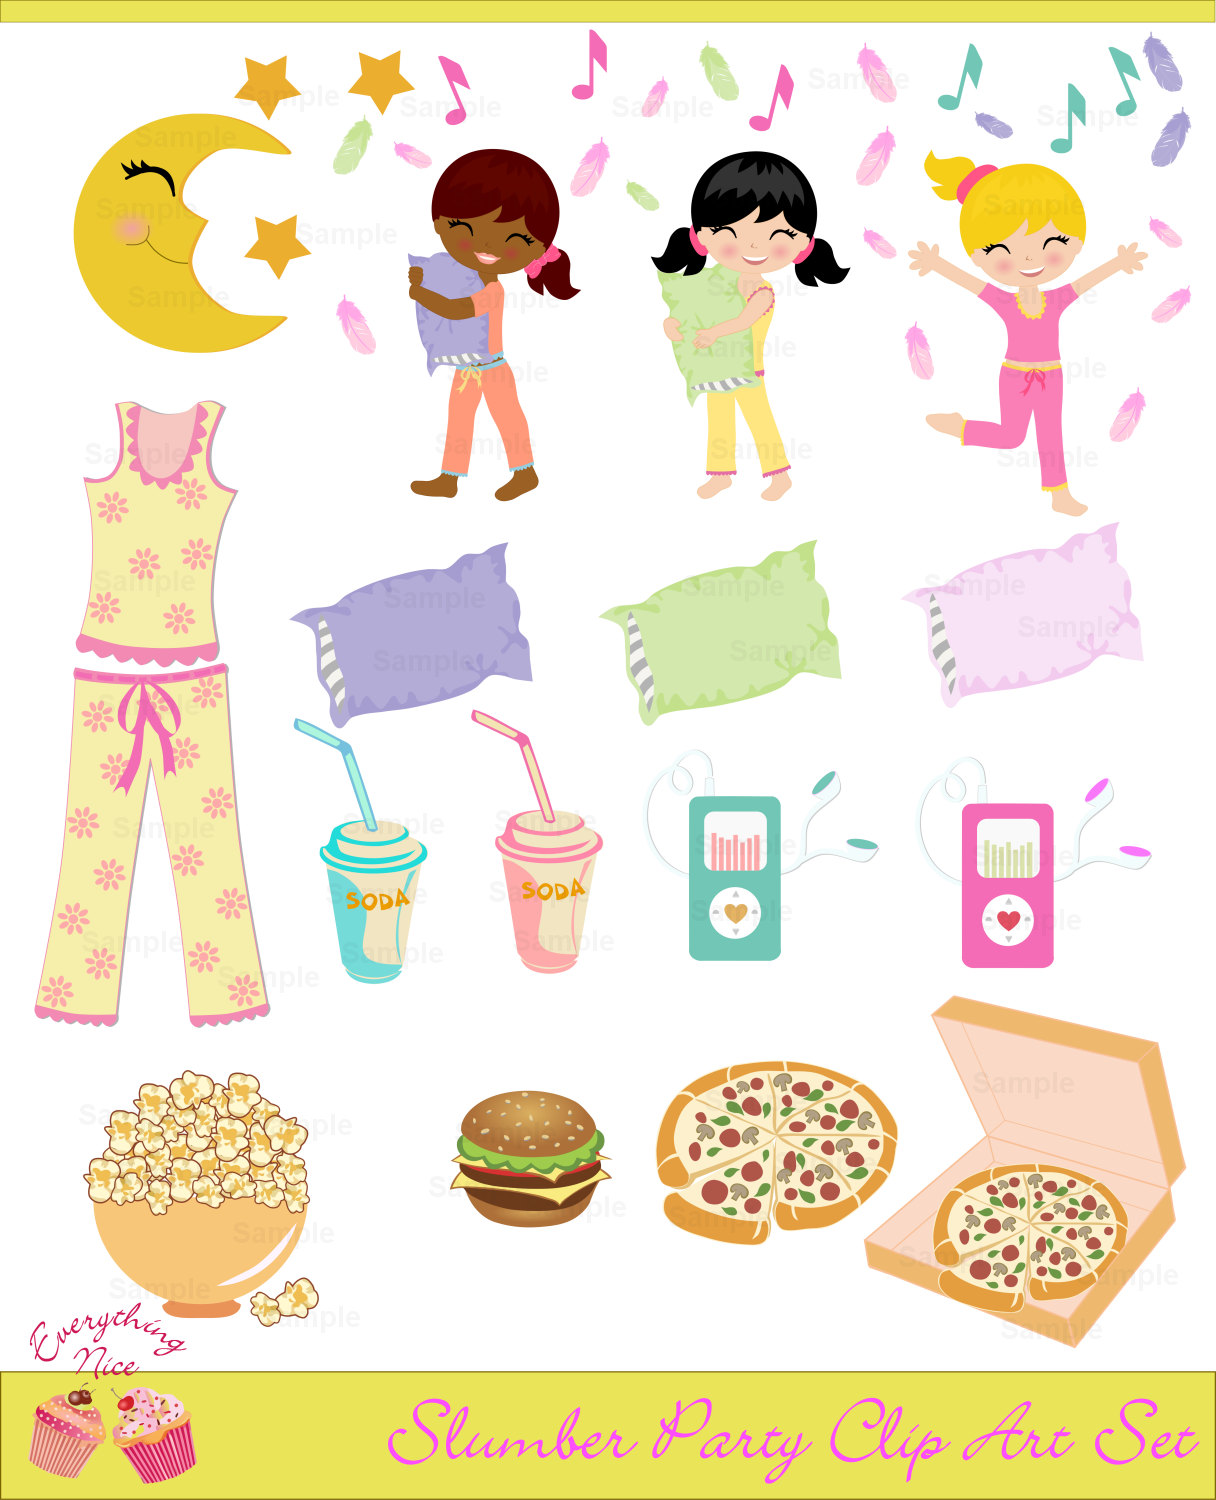 Slumber Party Clip Art Set.